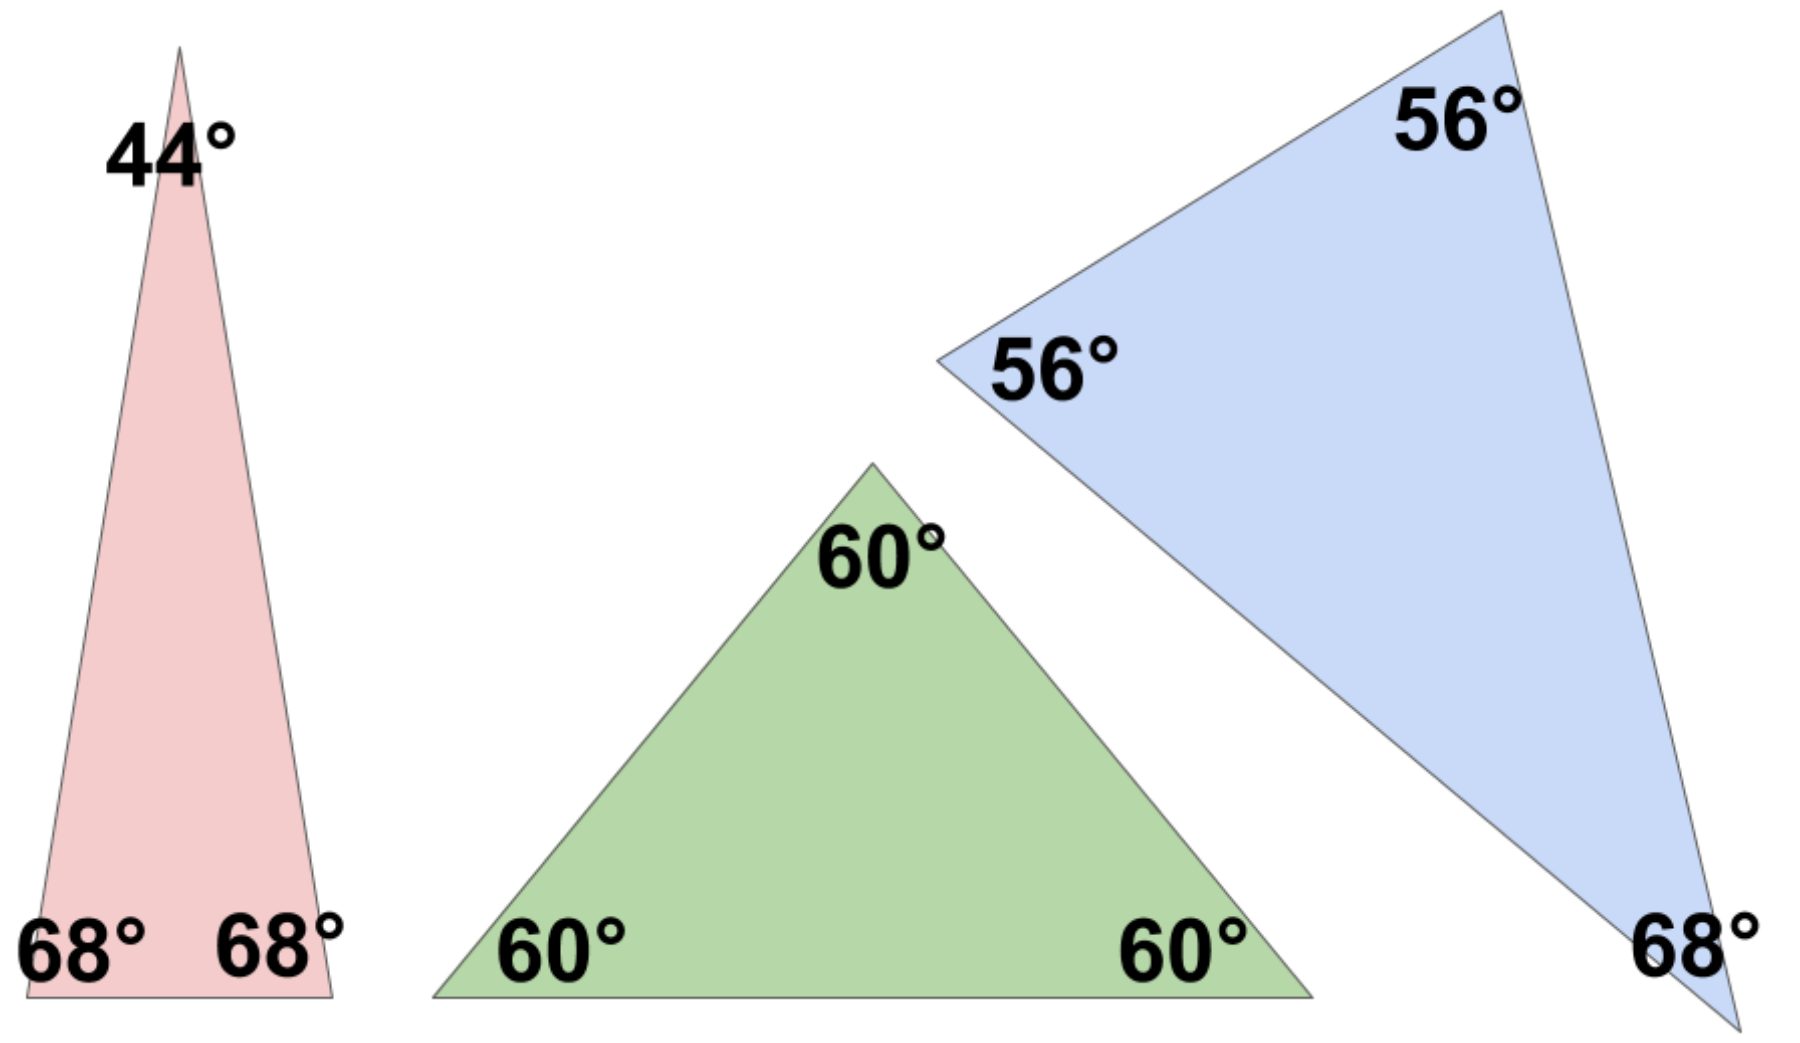 these are all acute triangles